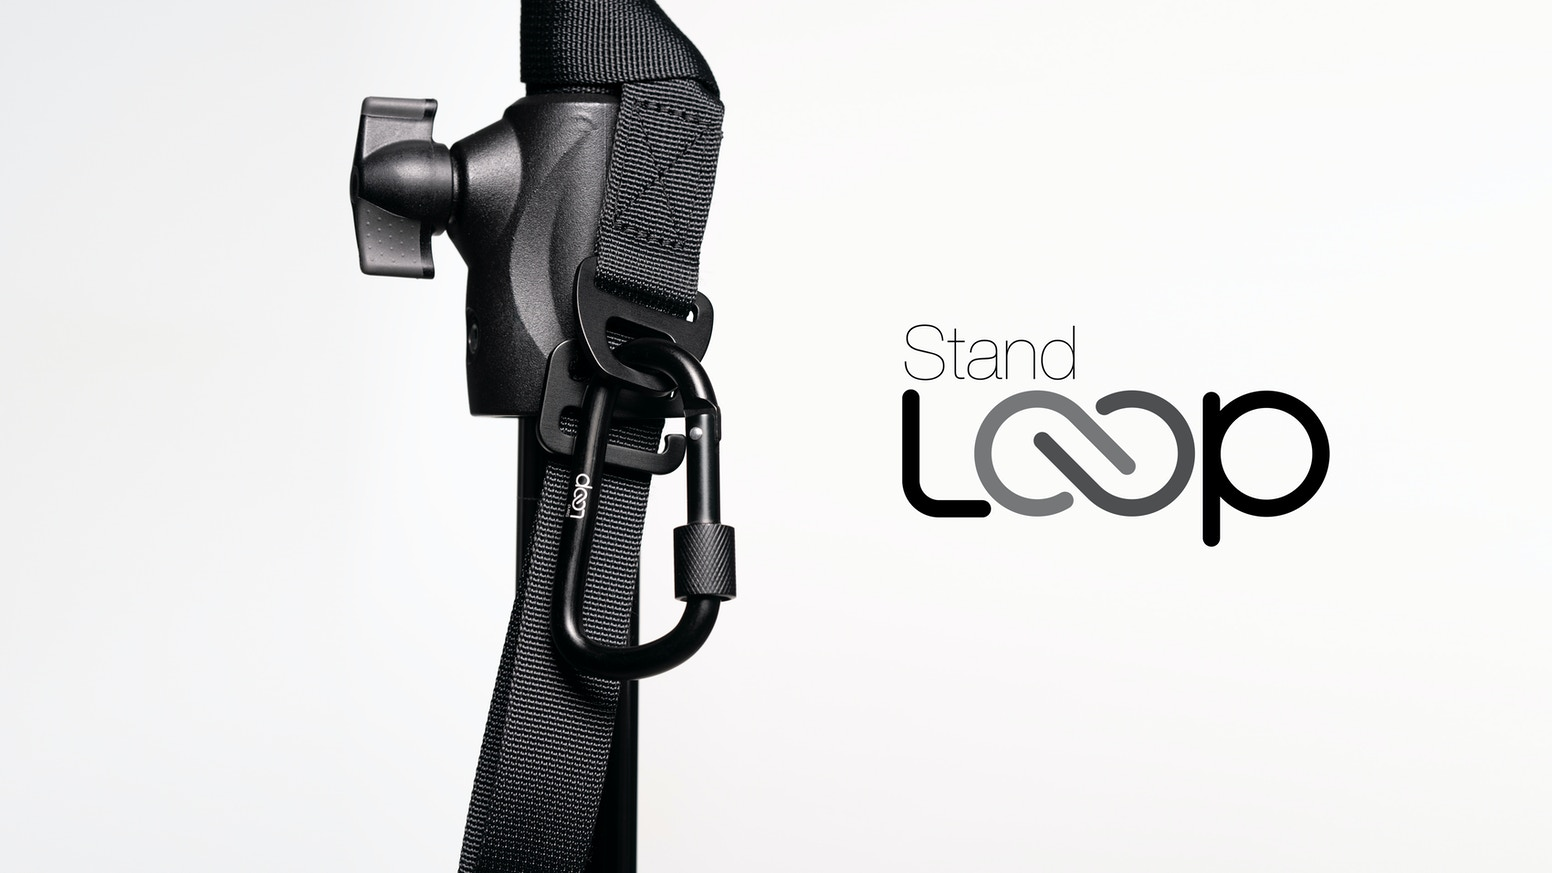 The ultimate fastener for light stands, tripods and so much more! Created for professional photographers by a professional photographer